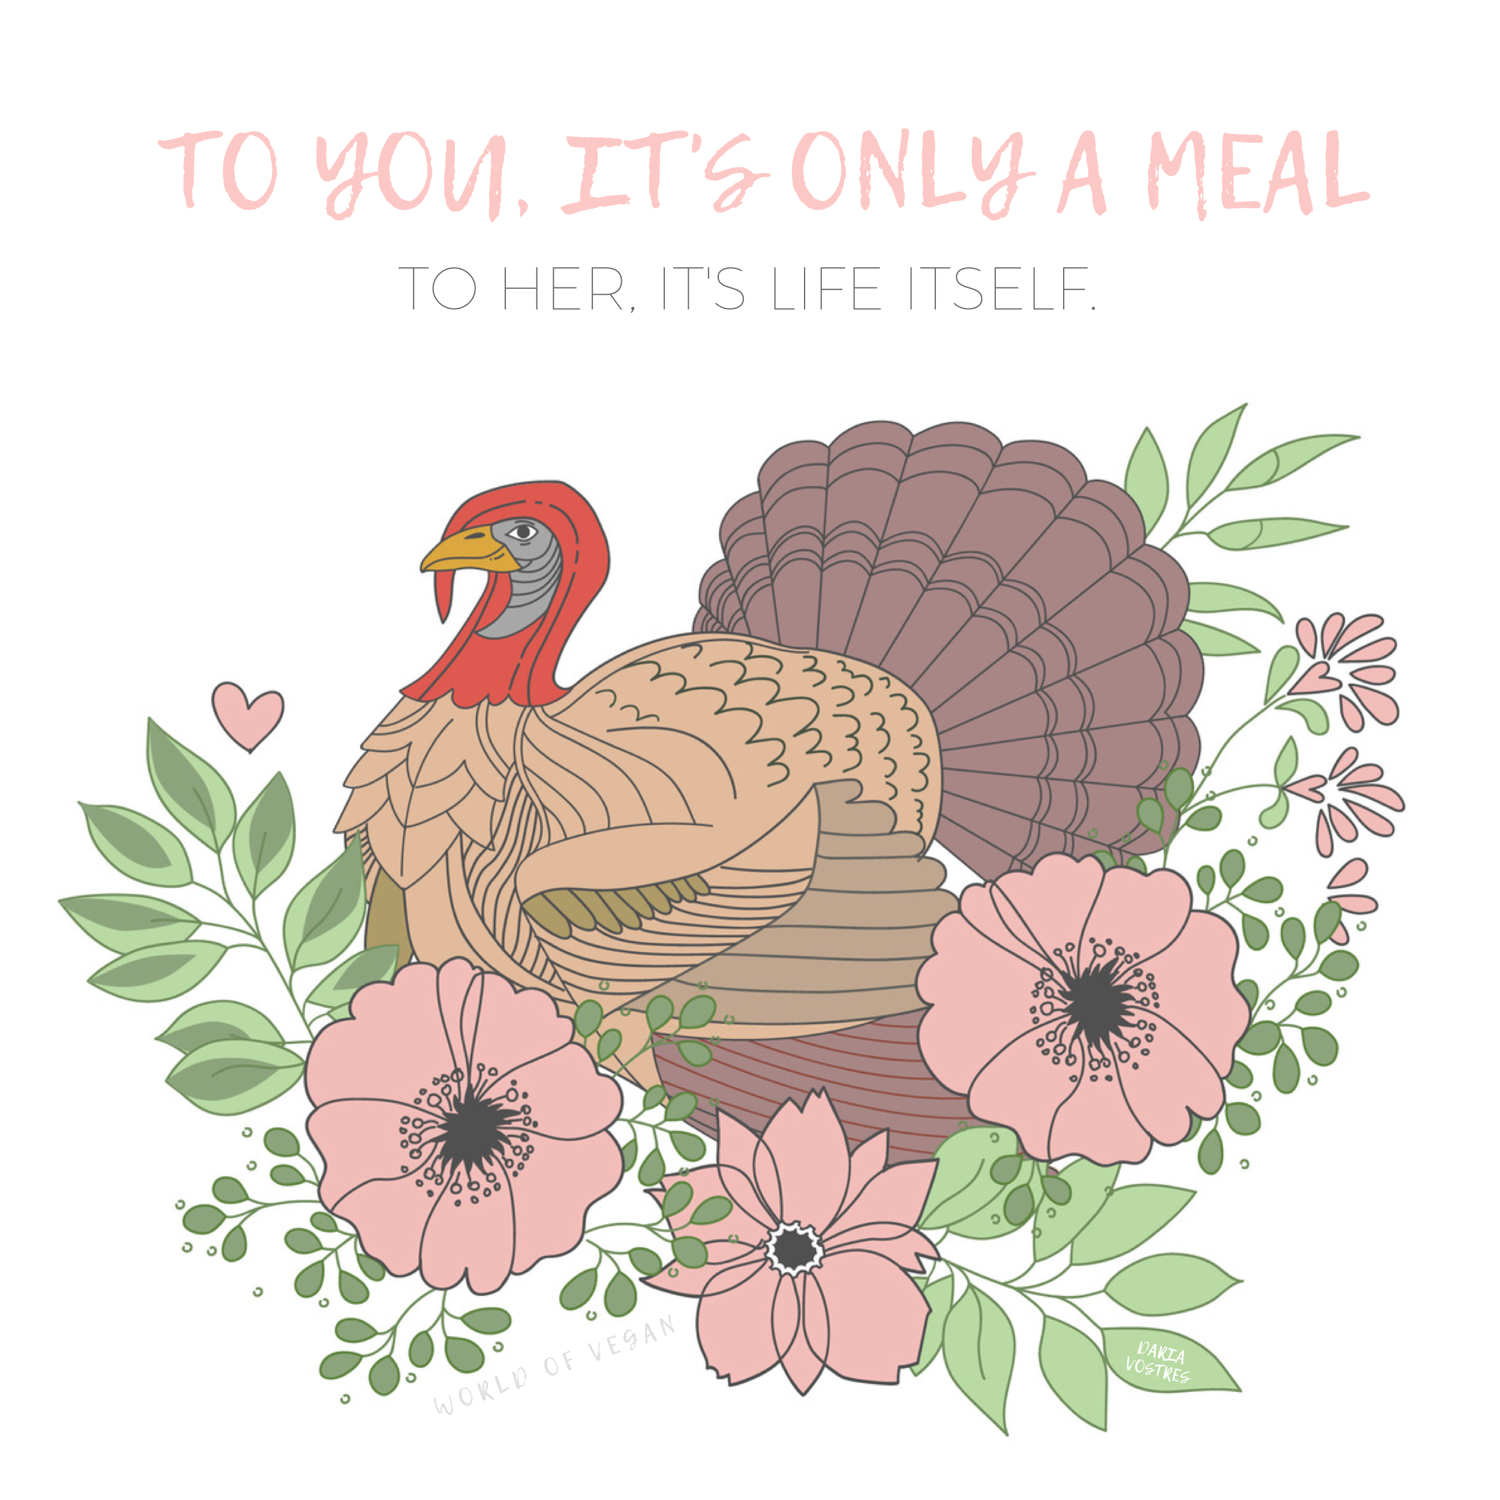 Celebrate A Vegan Thanksgiving | Turkey Artwork by Dana Vostres